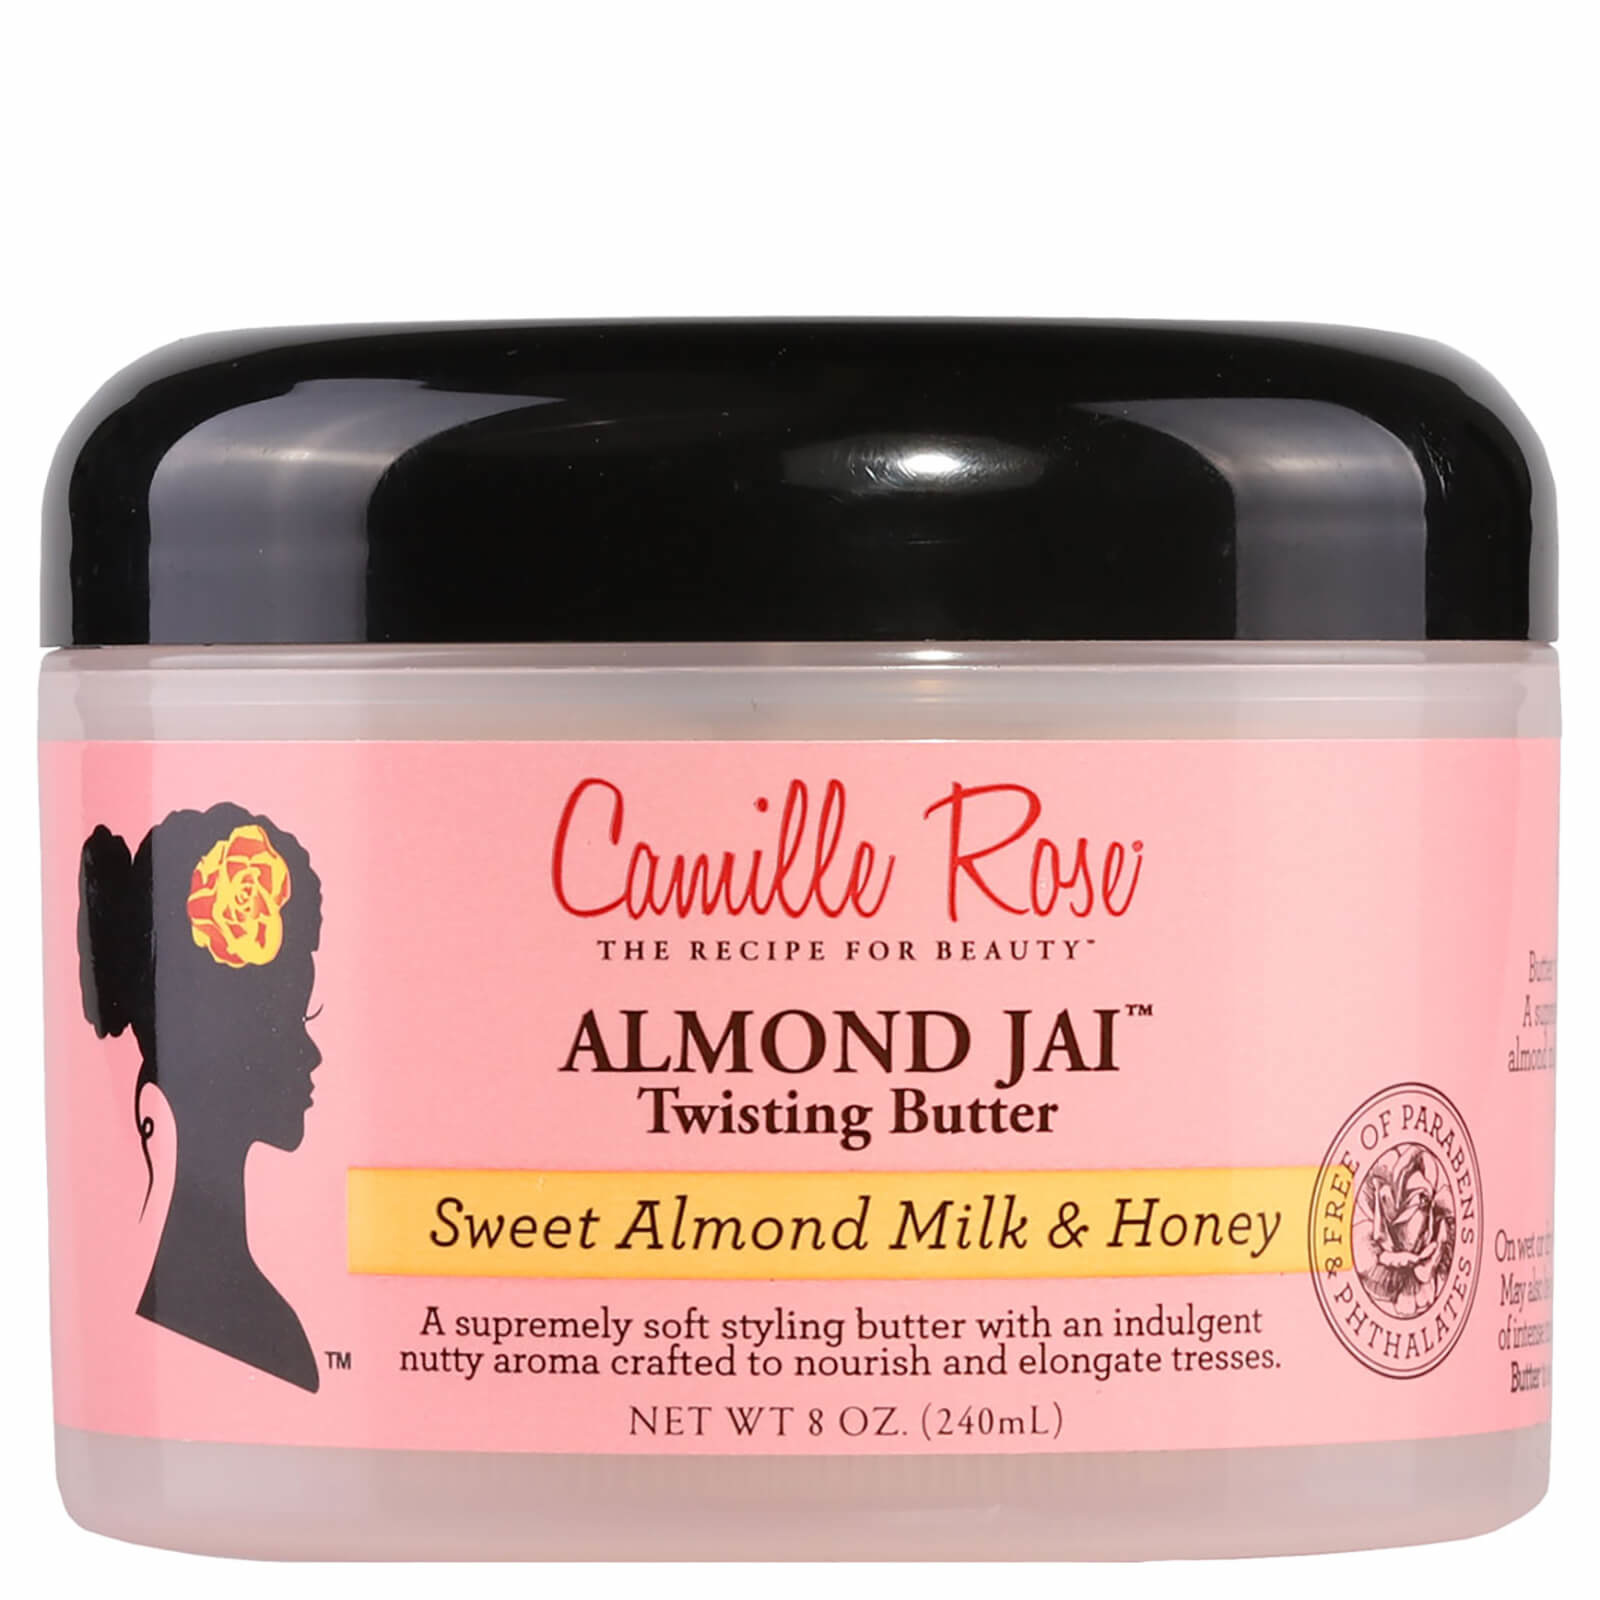 Camille Rose Camille Rose ALMOND JAI TWISTING BUTTER